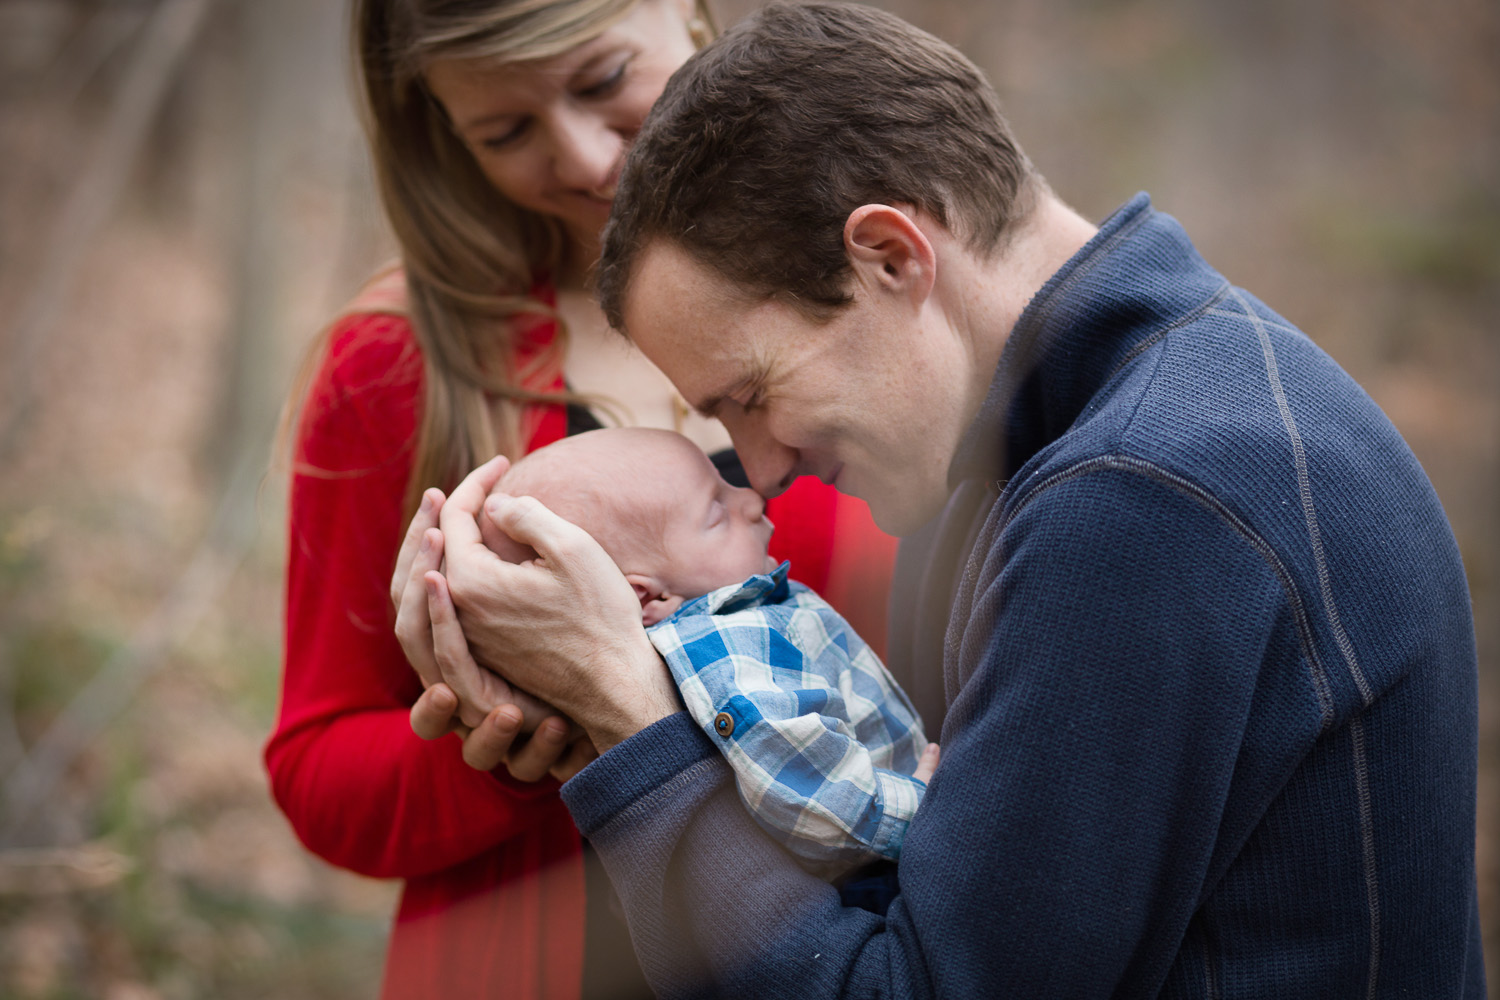 ellicott-city-newborn-photography-session.jpg